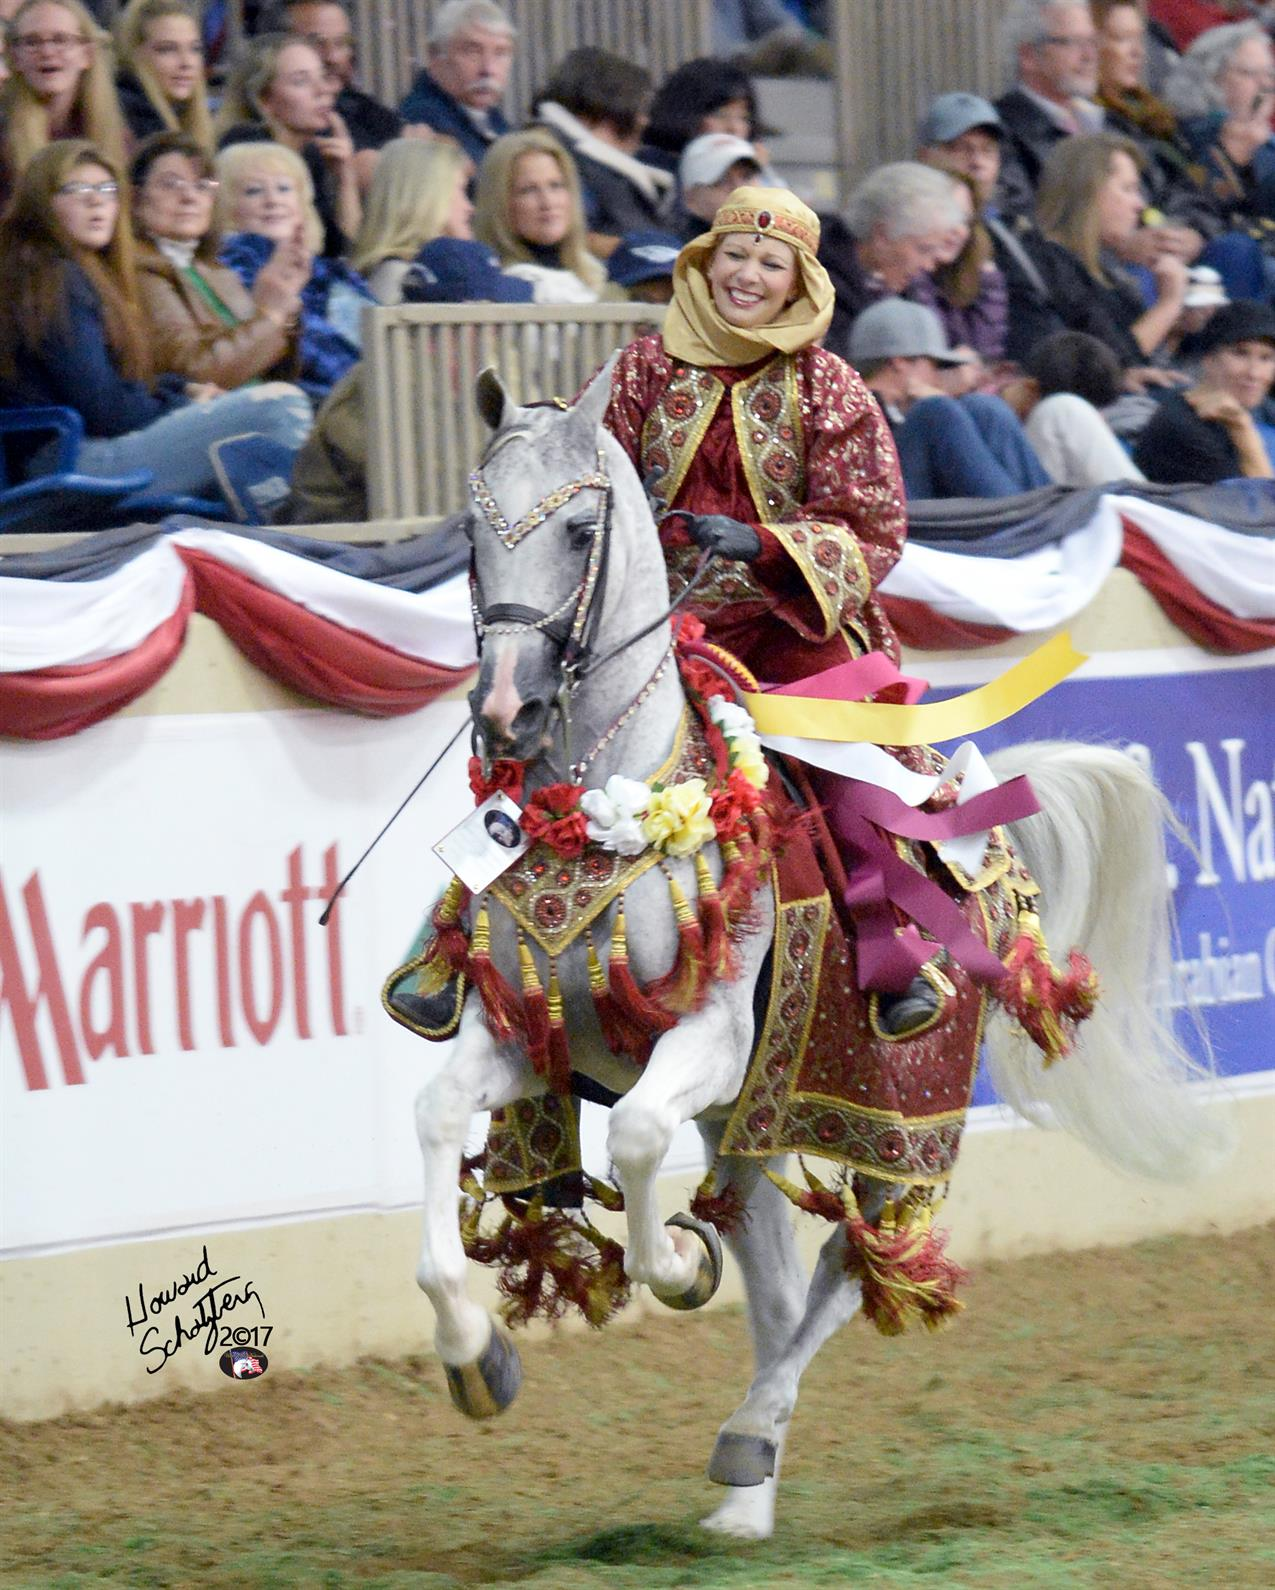 51st Annual Arabian And Half Arabian U S National Championship Horse Show Hosts Amazing Horses Chips For Charity Fundraiser And National Youth Judging Contest Us Equestrian